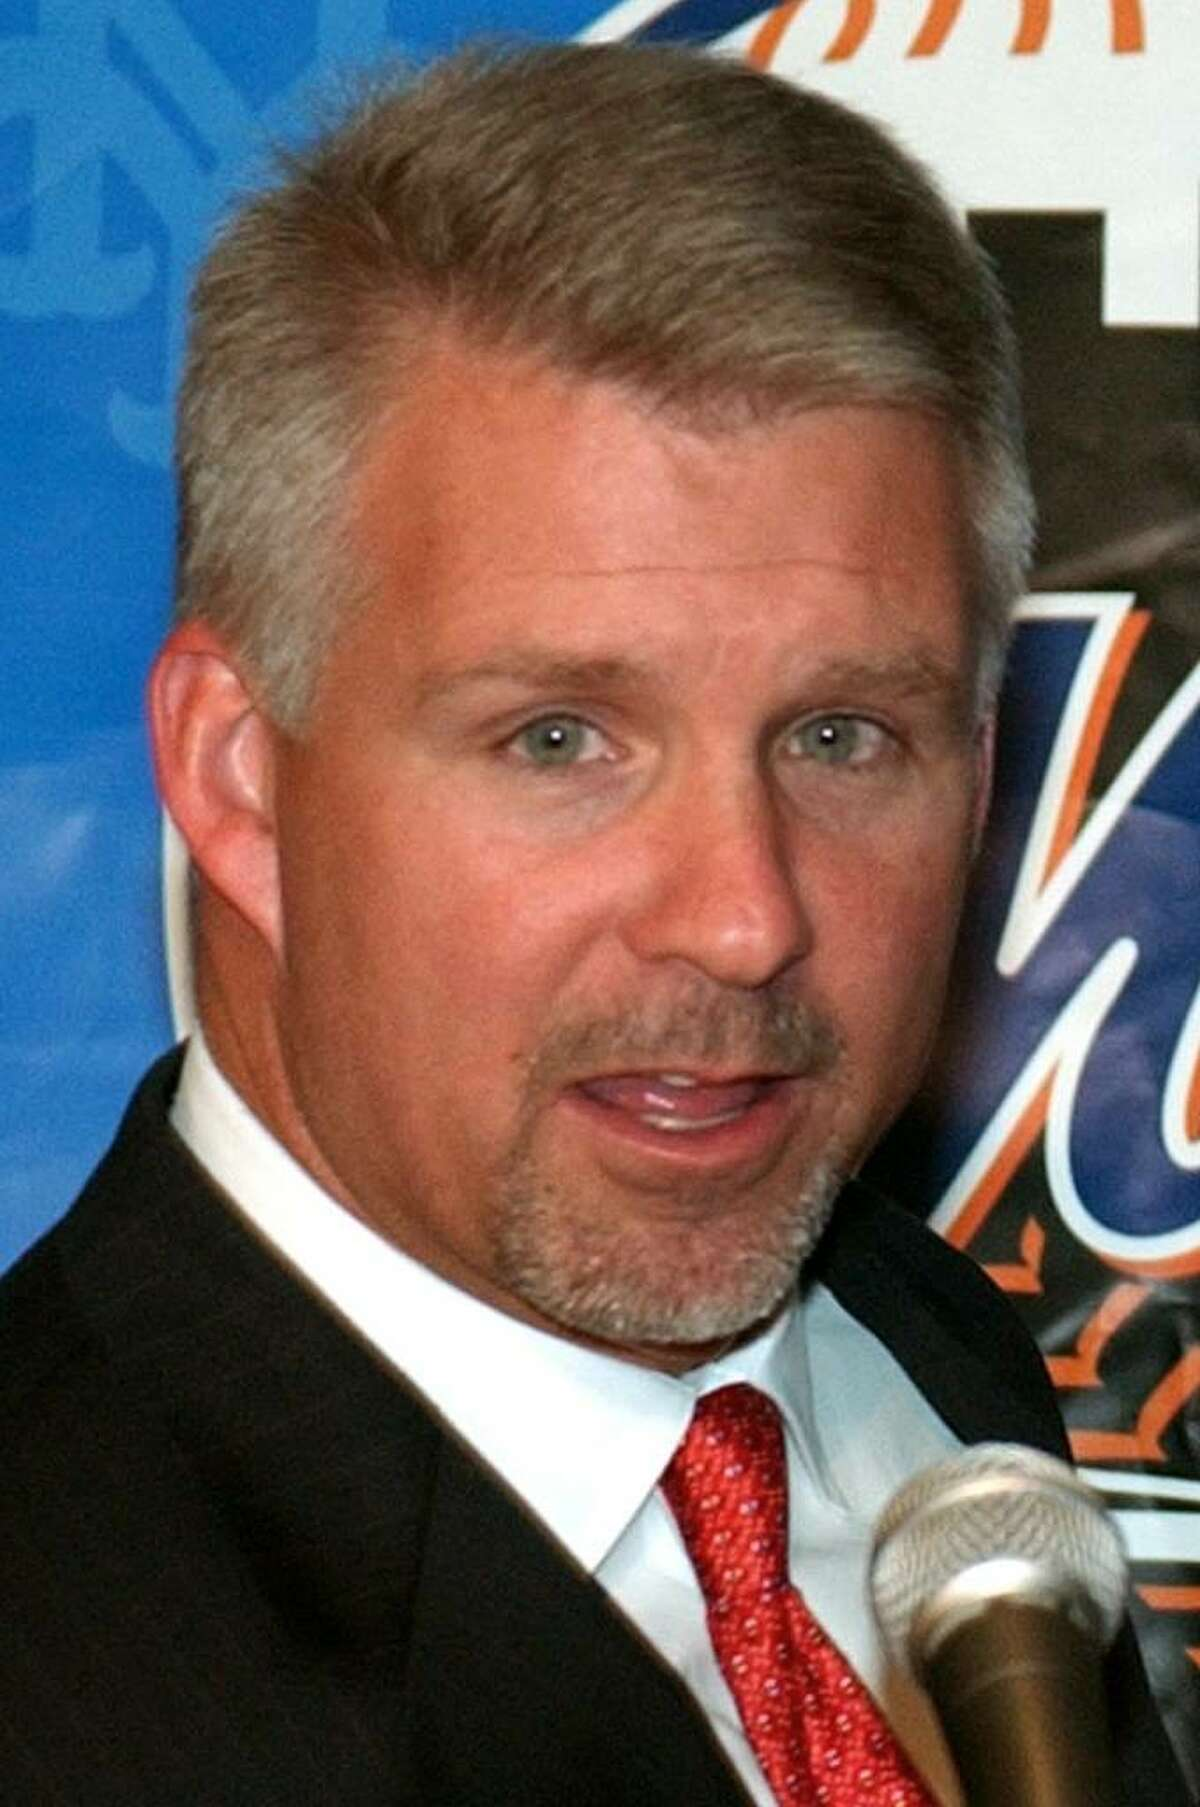 FILE - In this Oct. 28, 2002, file photo, New York Mets general manager Steve Phillips introduces new Mets manager Art Howe during a news conference at Shea Stadiium in New York. ESPN baseball analyst Steve Phillips admits having an affair with an assistant at the cable network who taunted his wife with phone calls and a letter graphically describing their relationship, the New York Post reported Wednesday, Oct. 21, 2009. (AP Photo/Kathy Willens)